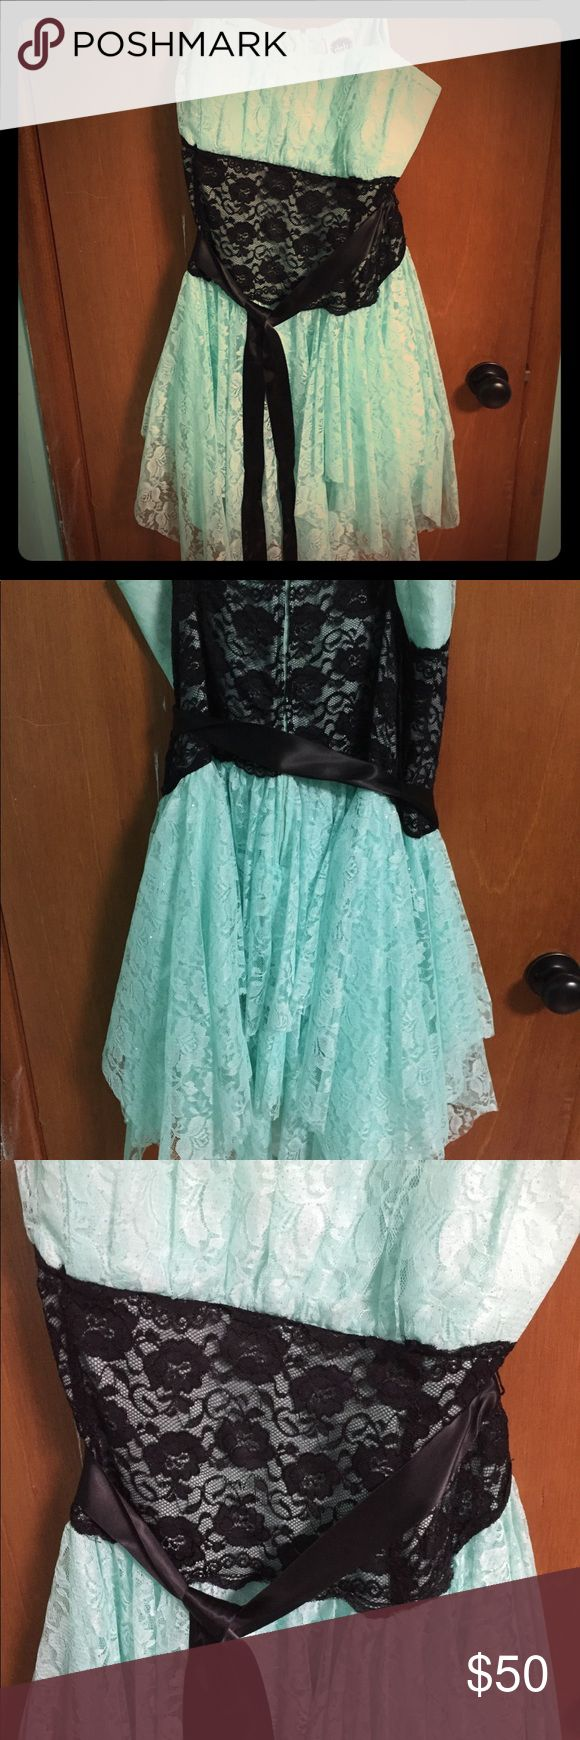 Mint lace formal dress Mint lace formal/prom dress . Has black lace in the middle and a black ribbon tie around the waist. Also has adjustable straps . Debs Dresses Prom